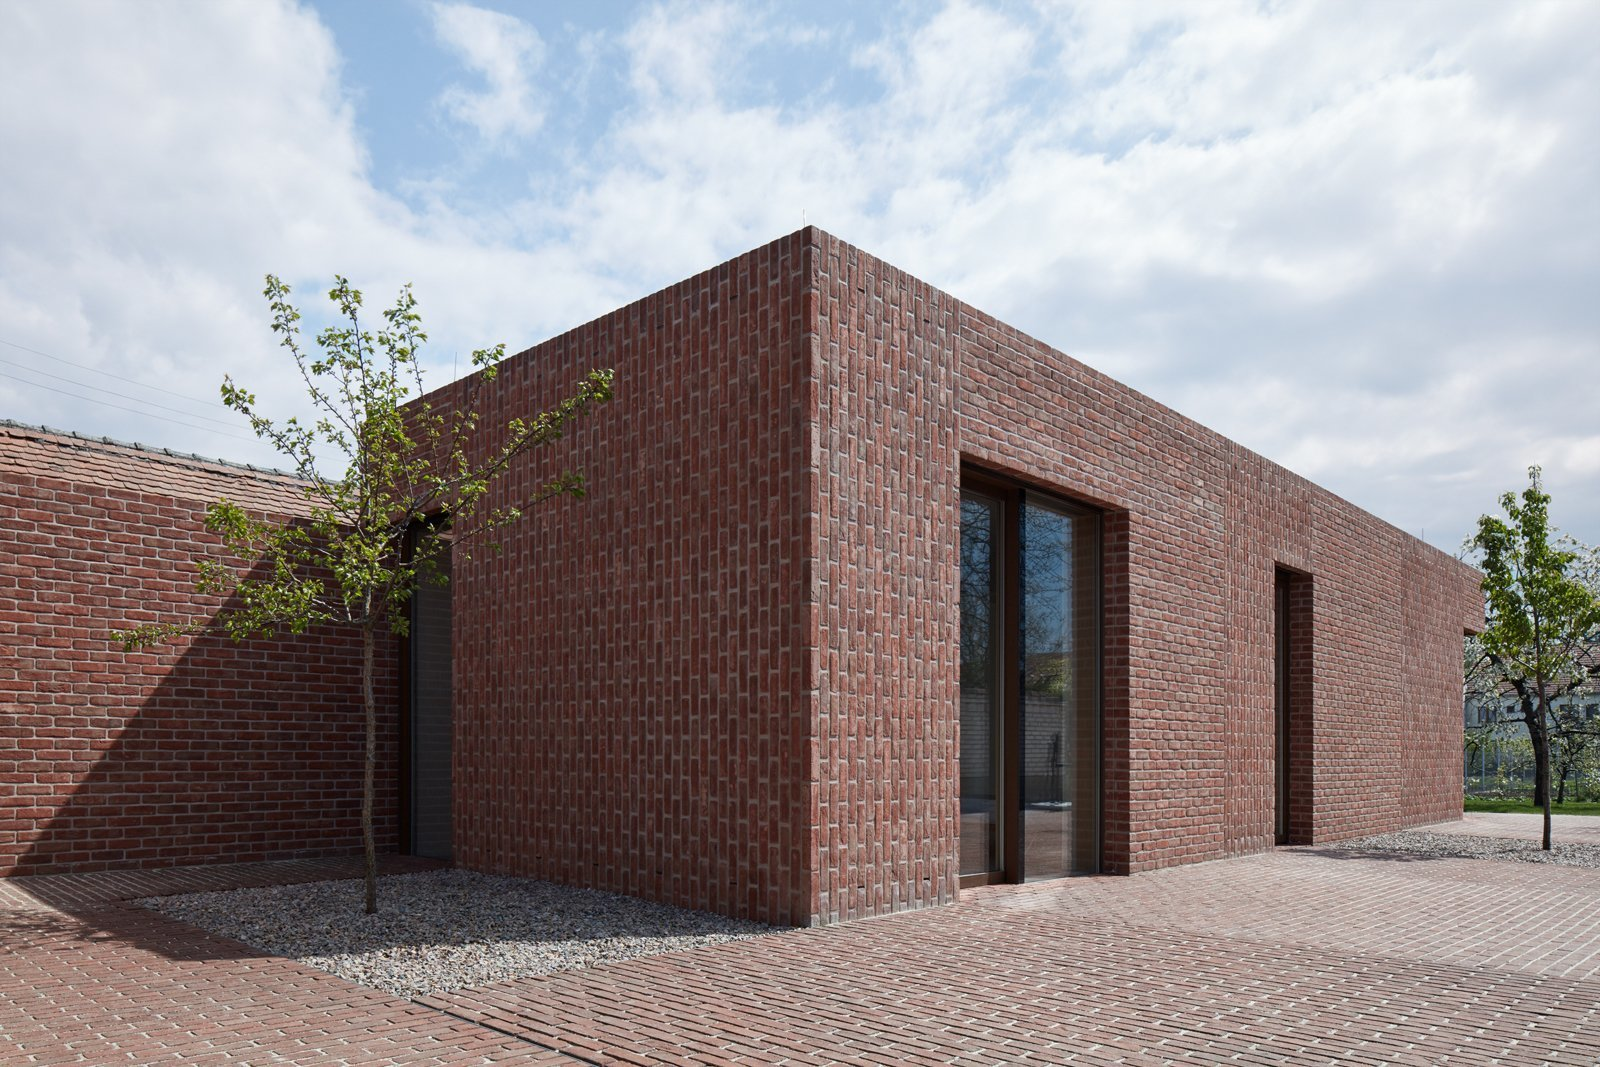 Photo 9 Of 10 In 10 Modern Structures That Use Brick In